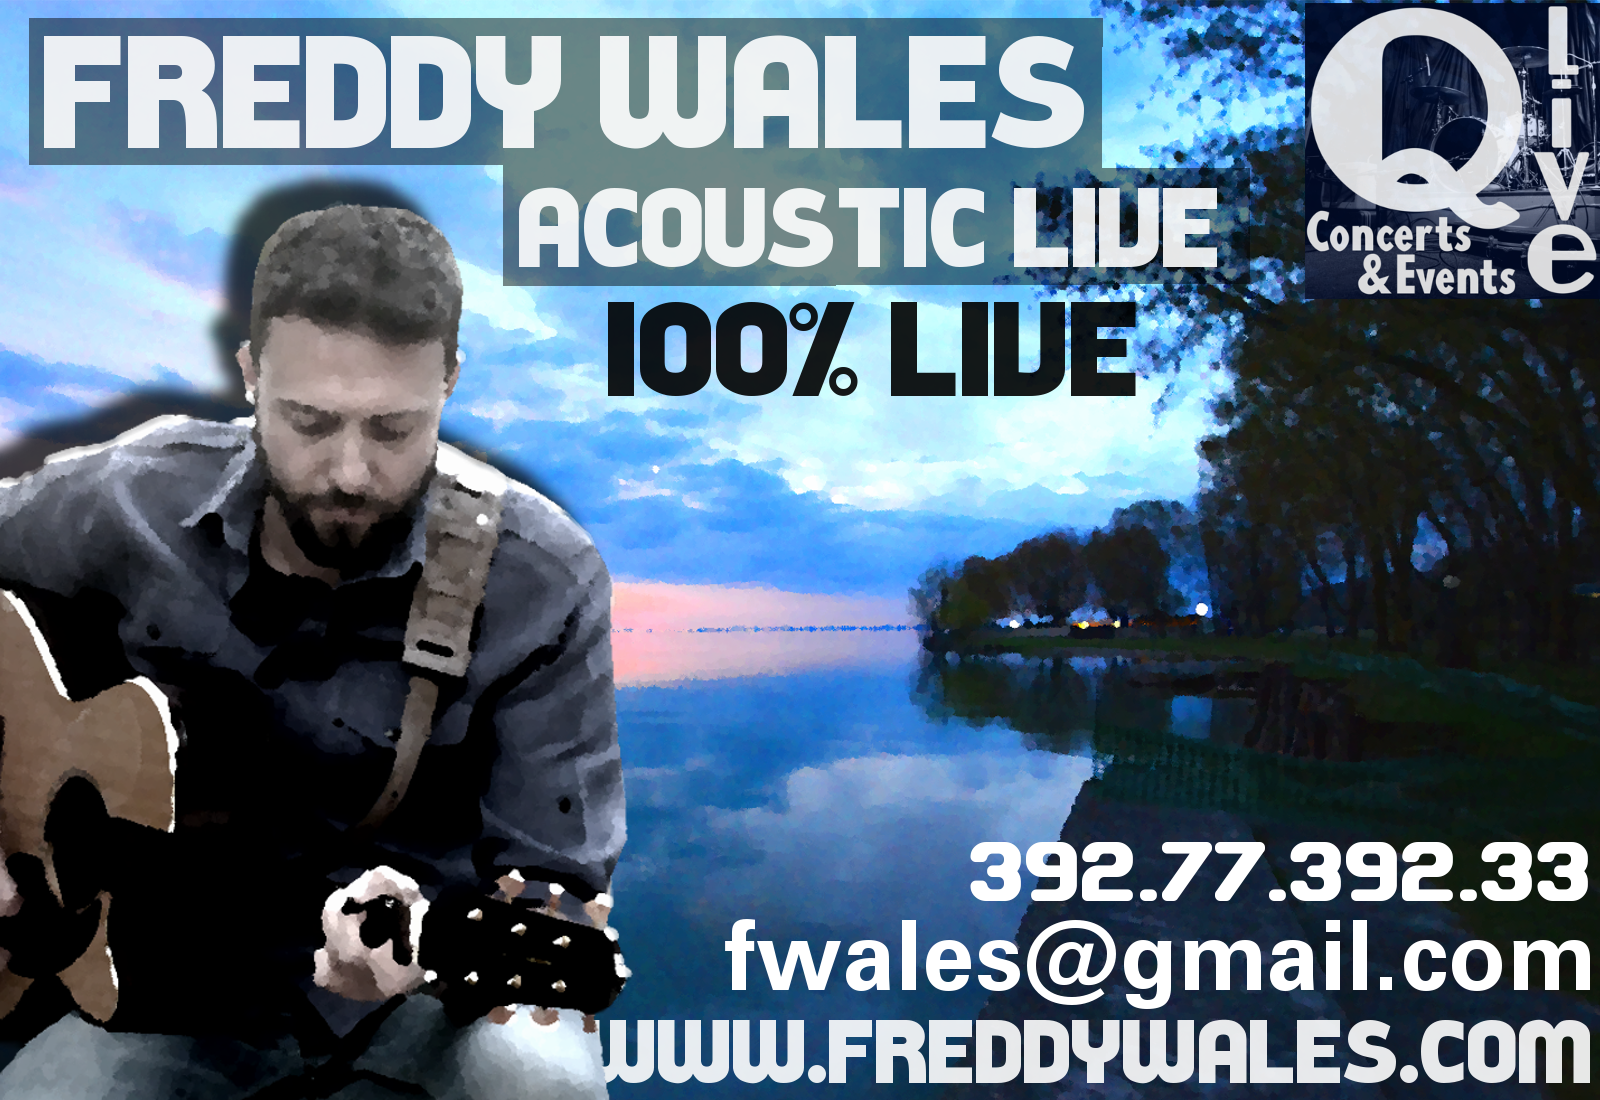 Freddy Wales, Live Acustico 100% Live!!!